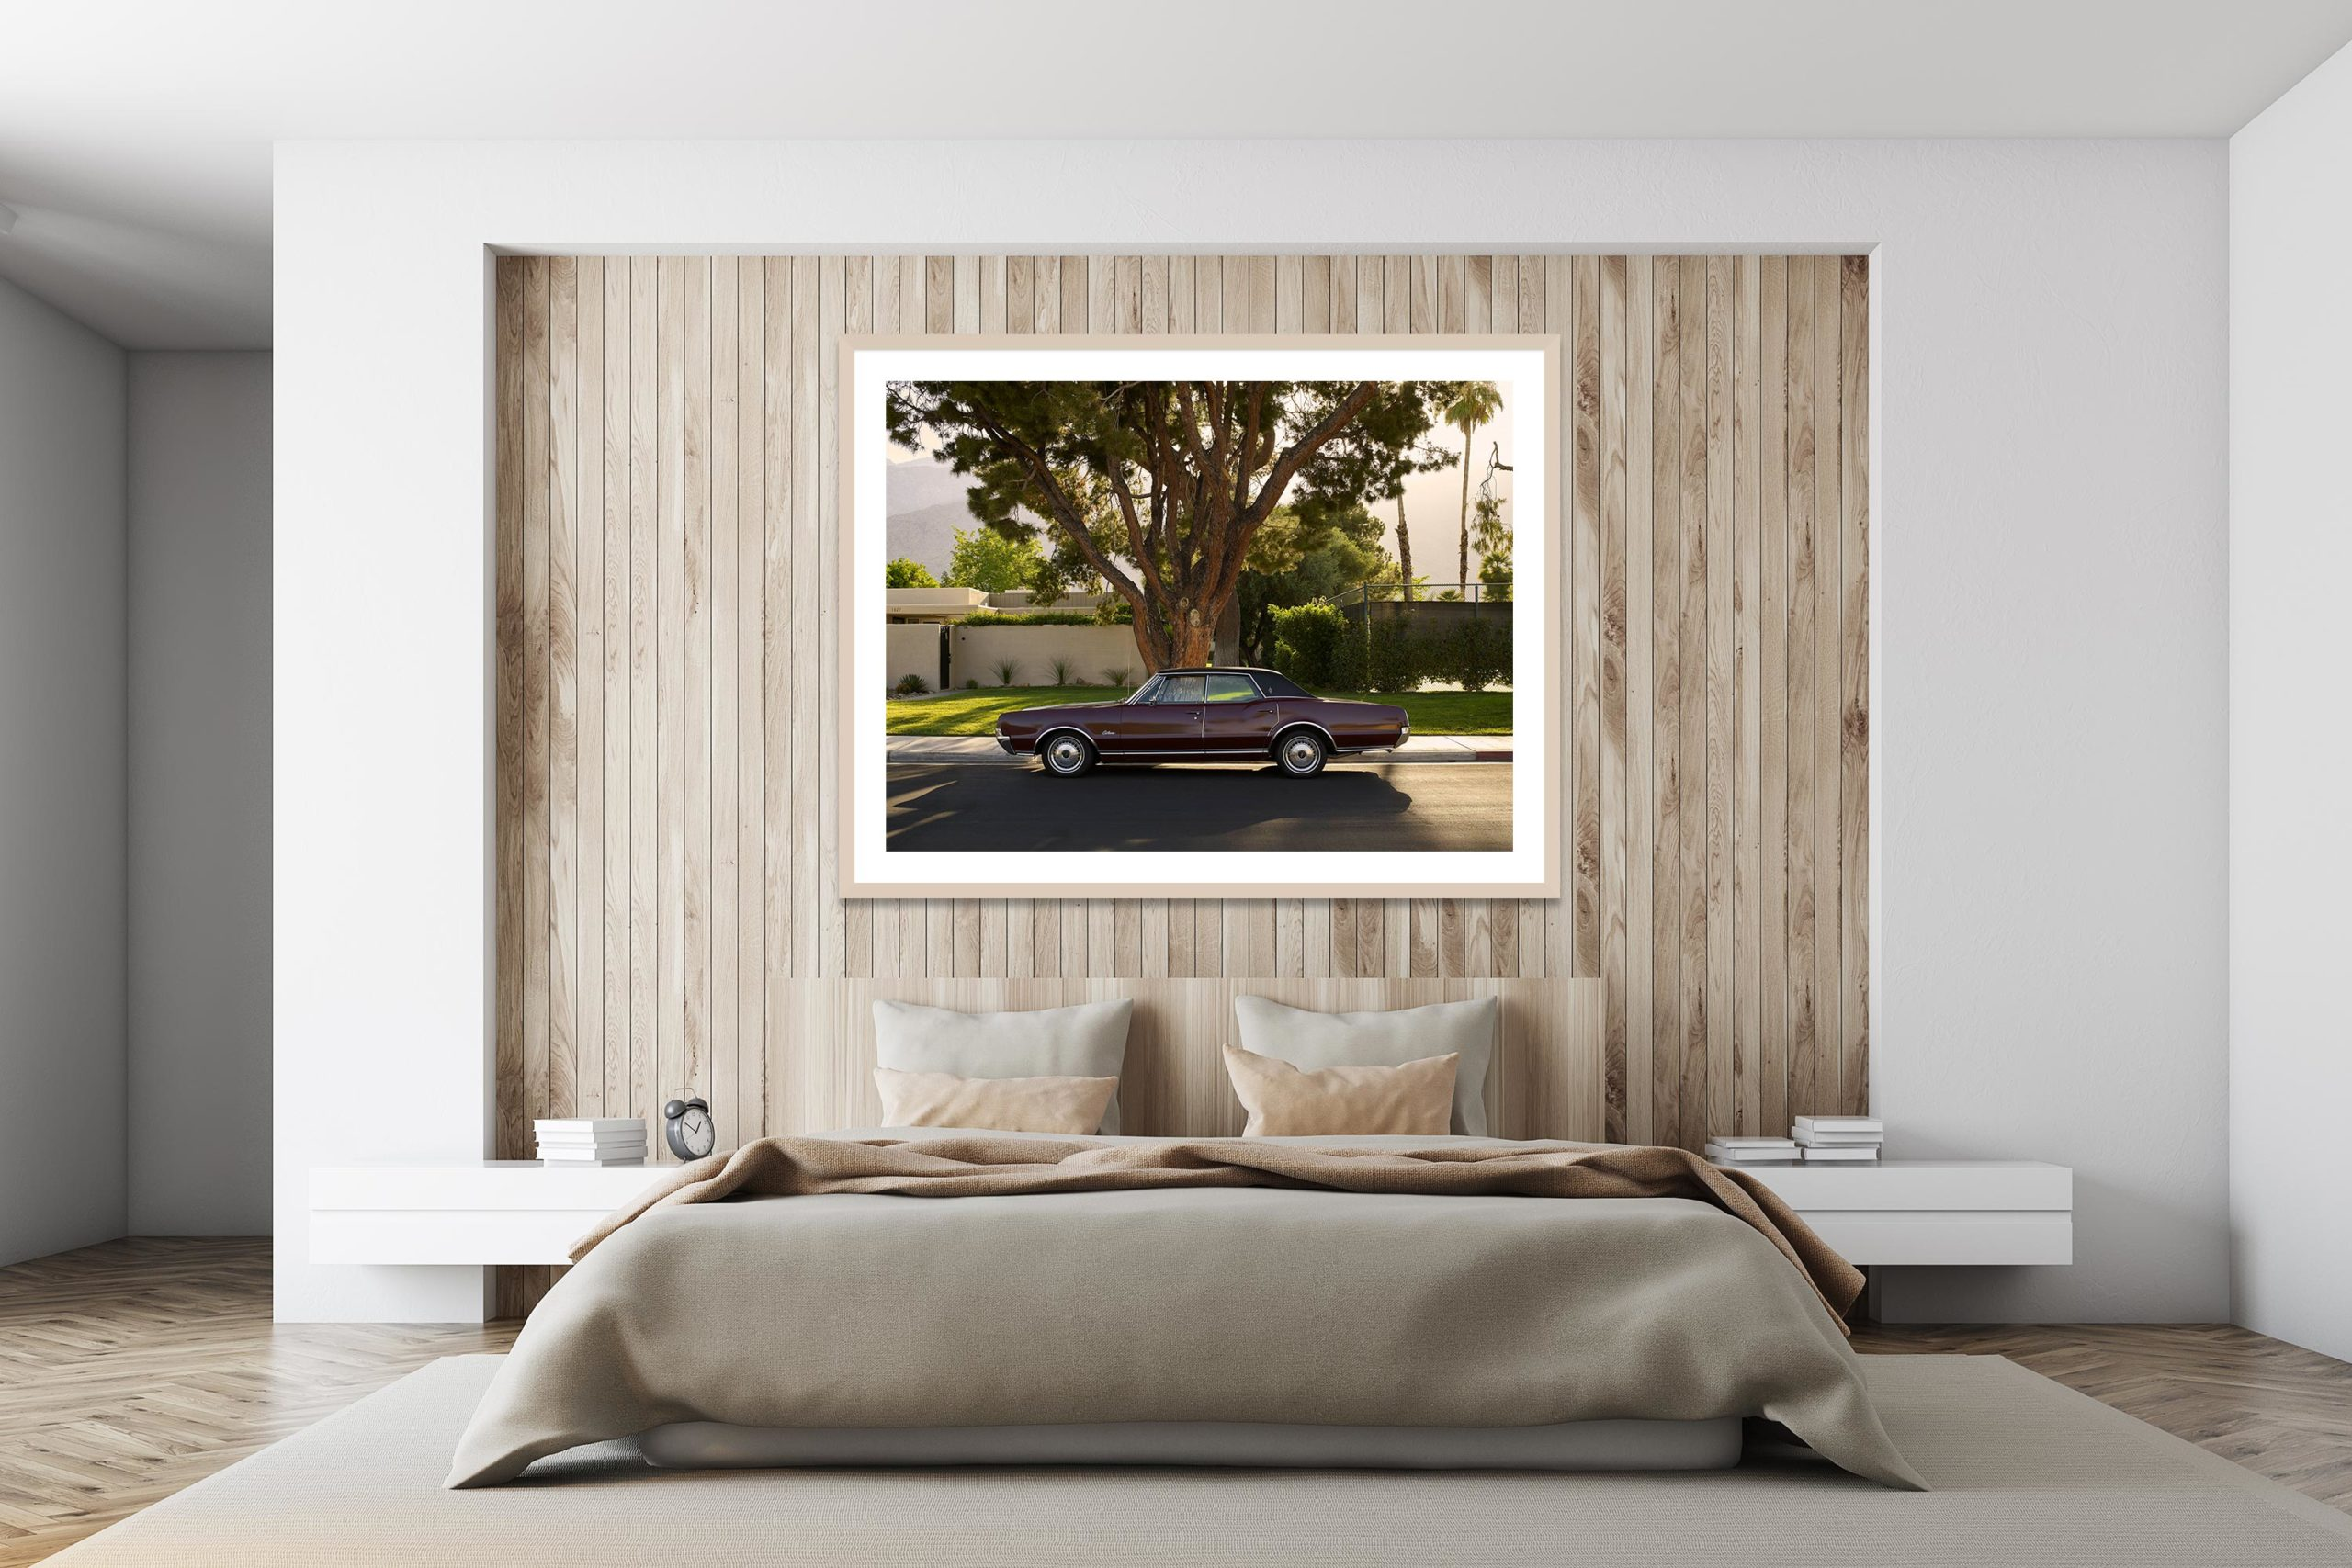 Olds Mobile - Timber Frame - I Heart Palm Springs Collection - Fine Art Photography by Toby Dixon